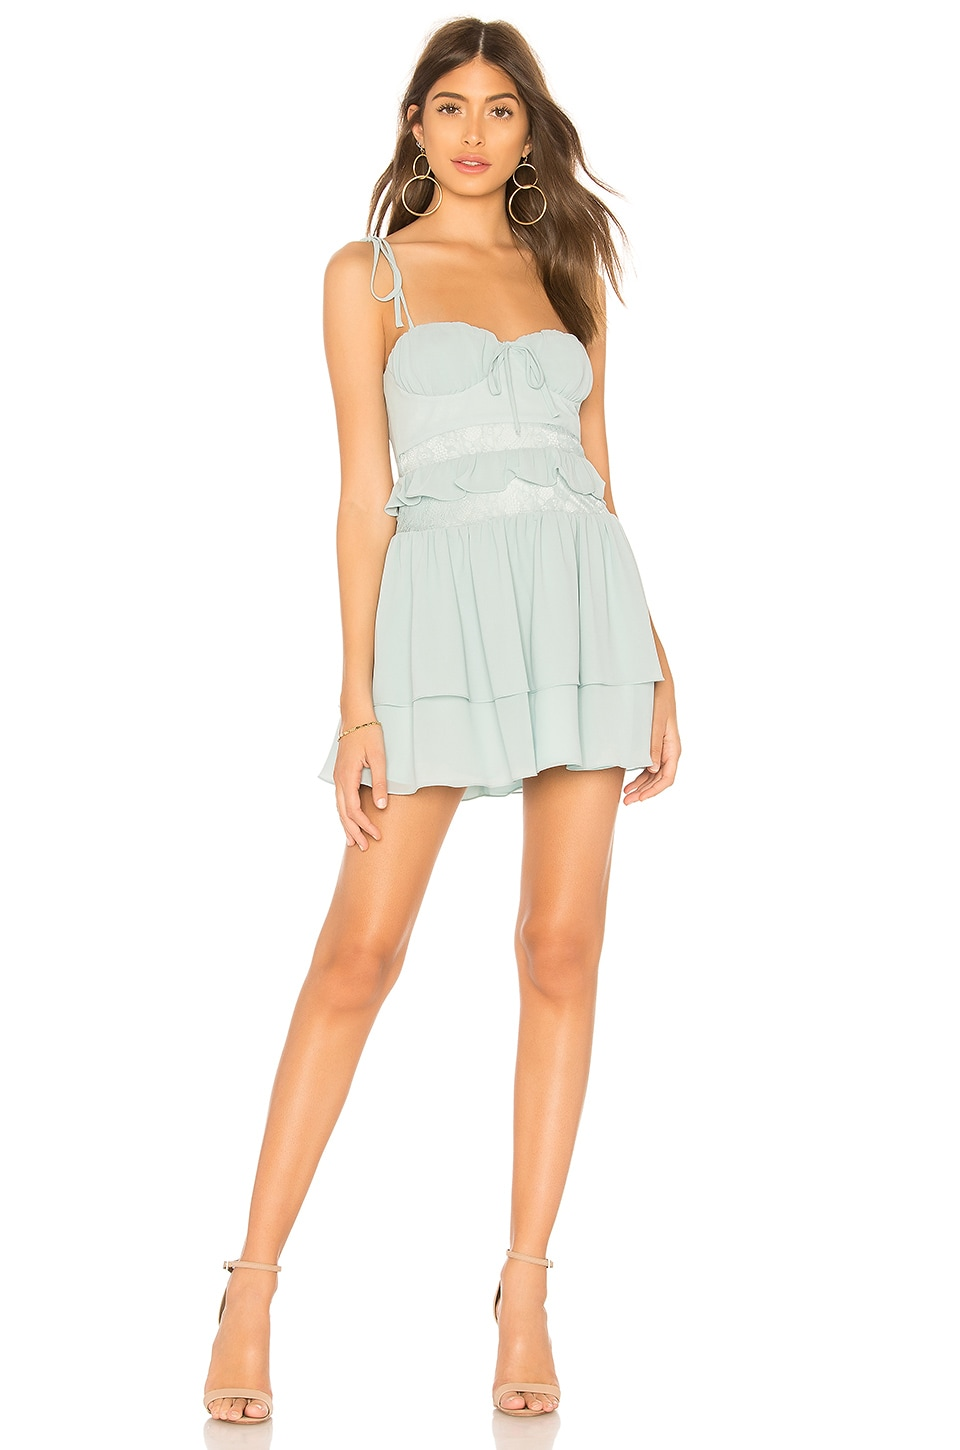 Lovers + Friends Seabrook Dress in Mist